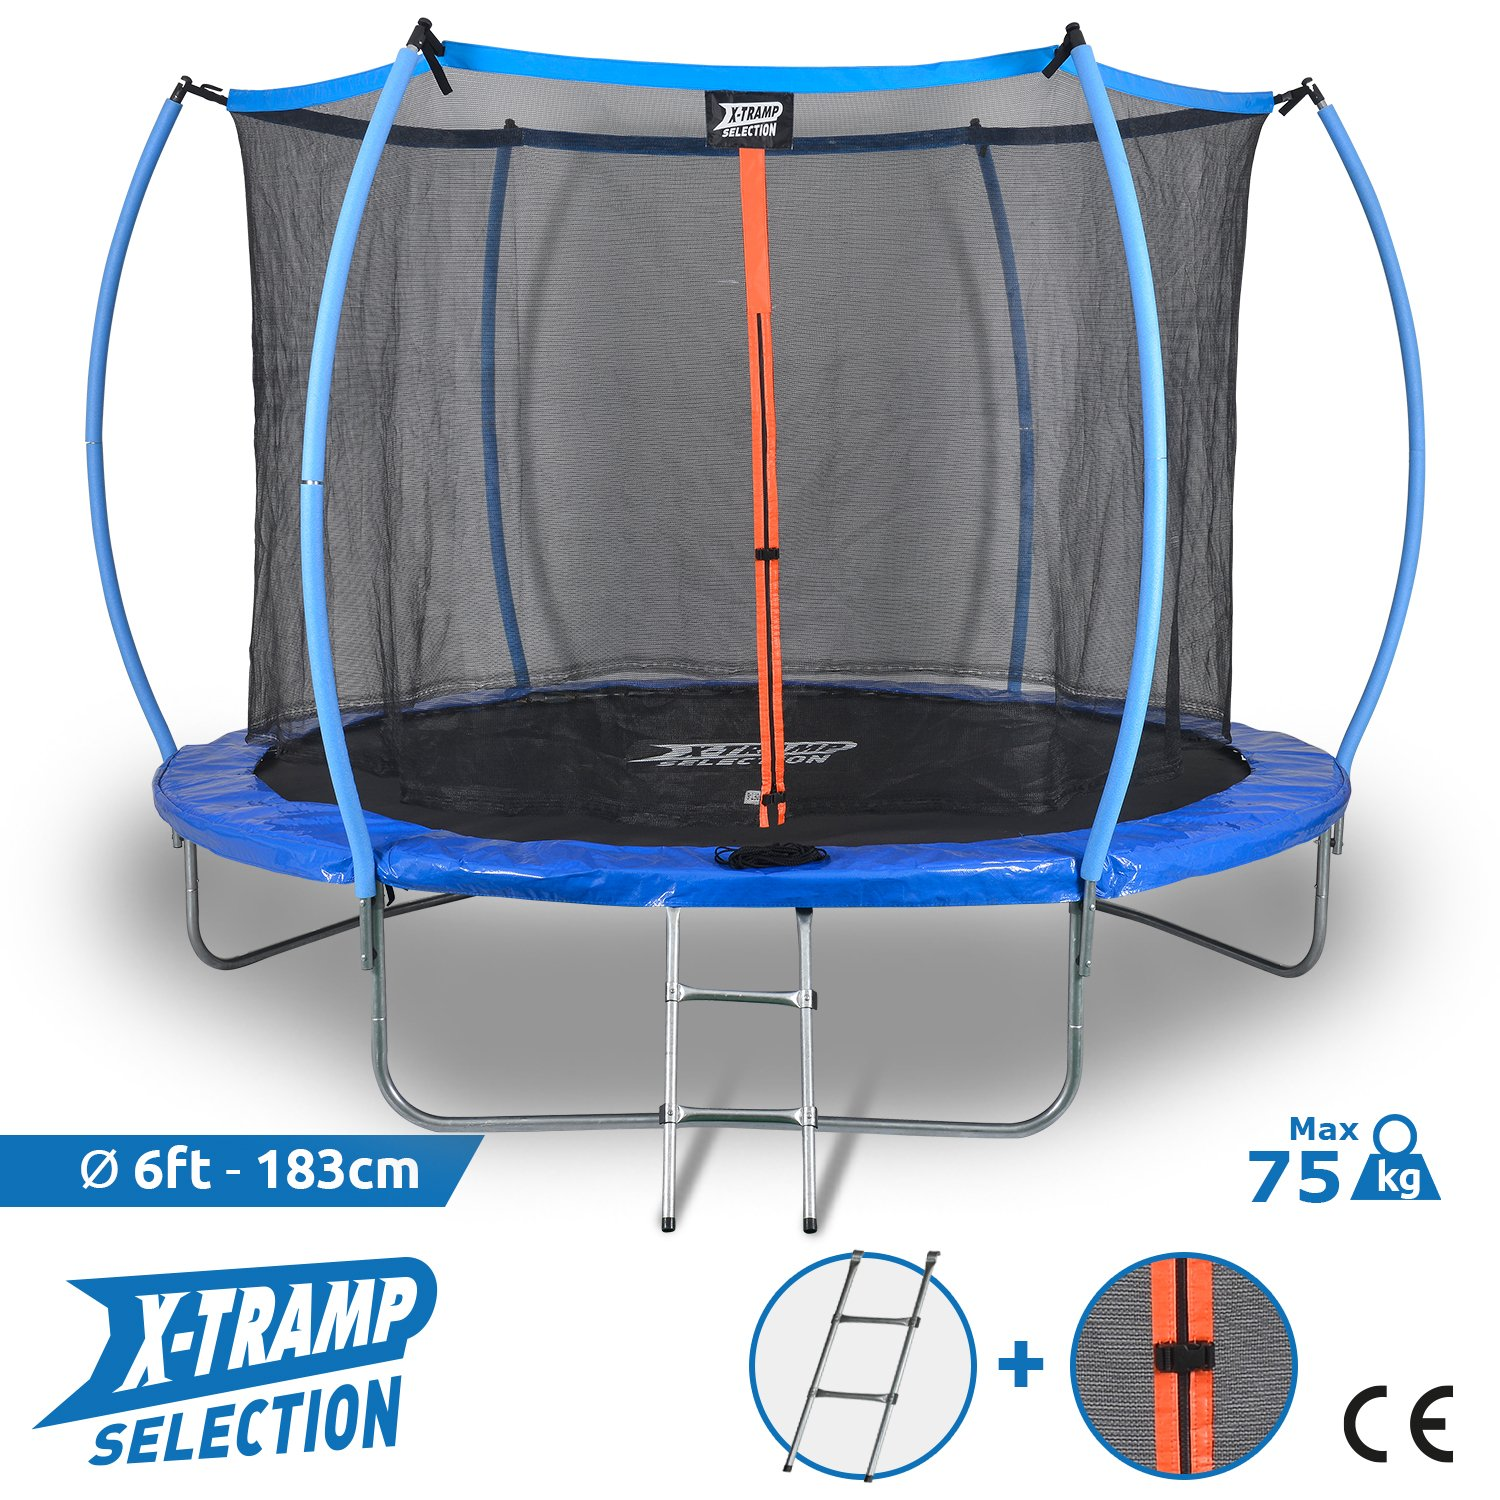 X-TRAMP Outdoor Trampolin Selection 183 cm 6 FT CE Standard 5 Jahre Garantie